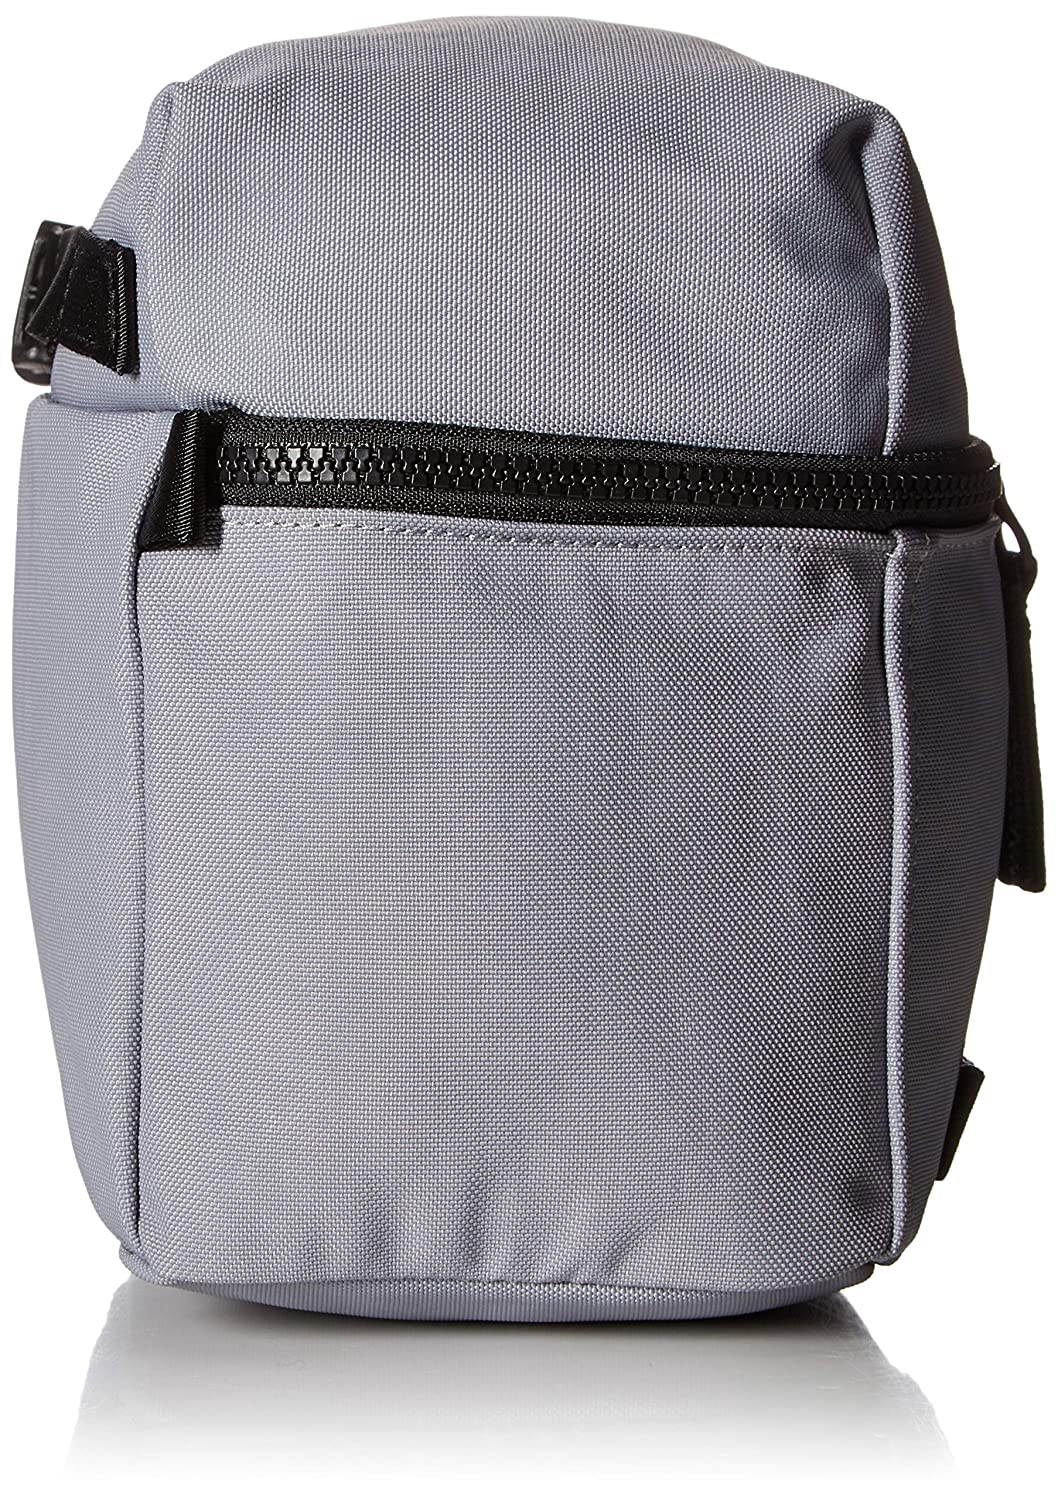 Timbuk2 Essentials Kit Jet Black Lug Small 1644-2-2489